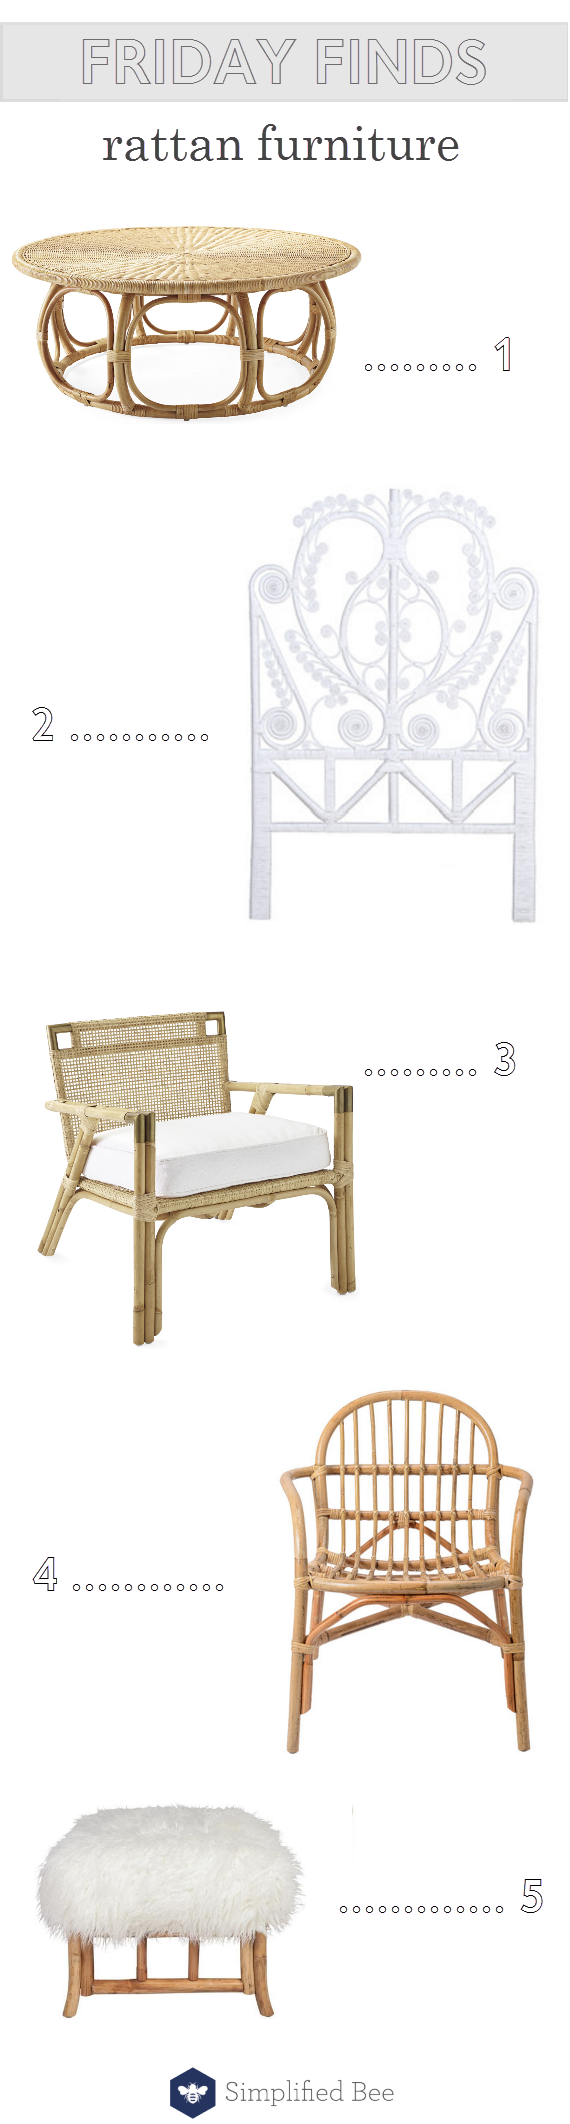 rattan furniture // friday finds // @simplifiedbee